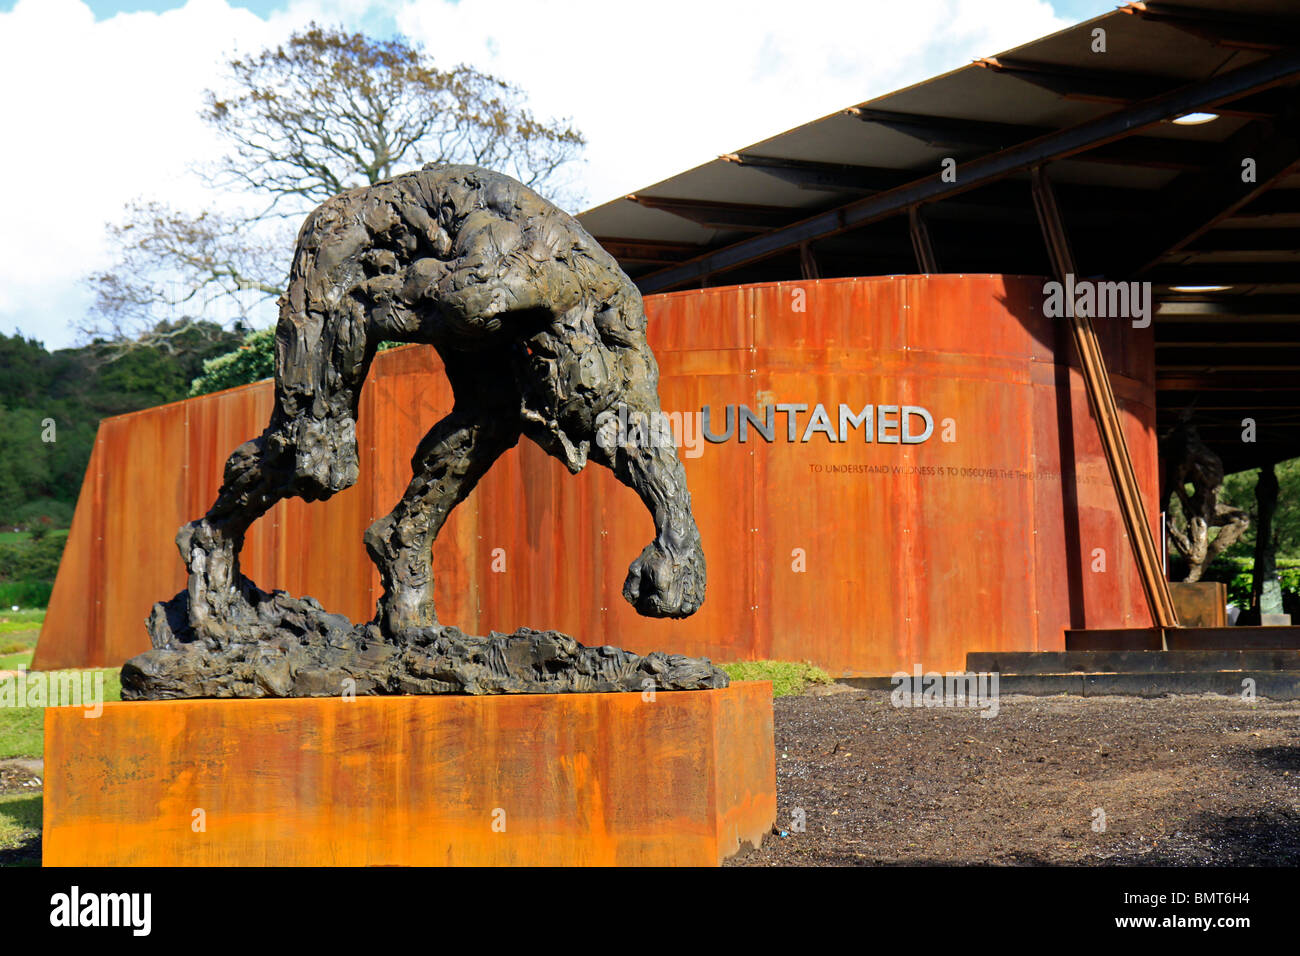 ' Untamed: Restoring the lost balance between man and nature' is a year long exhibition being held at Kirstenbosch - Stock Image